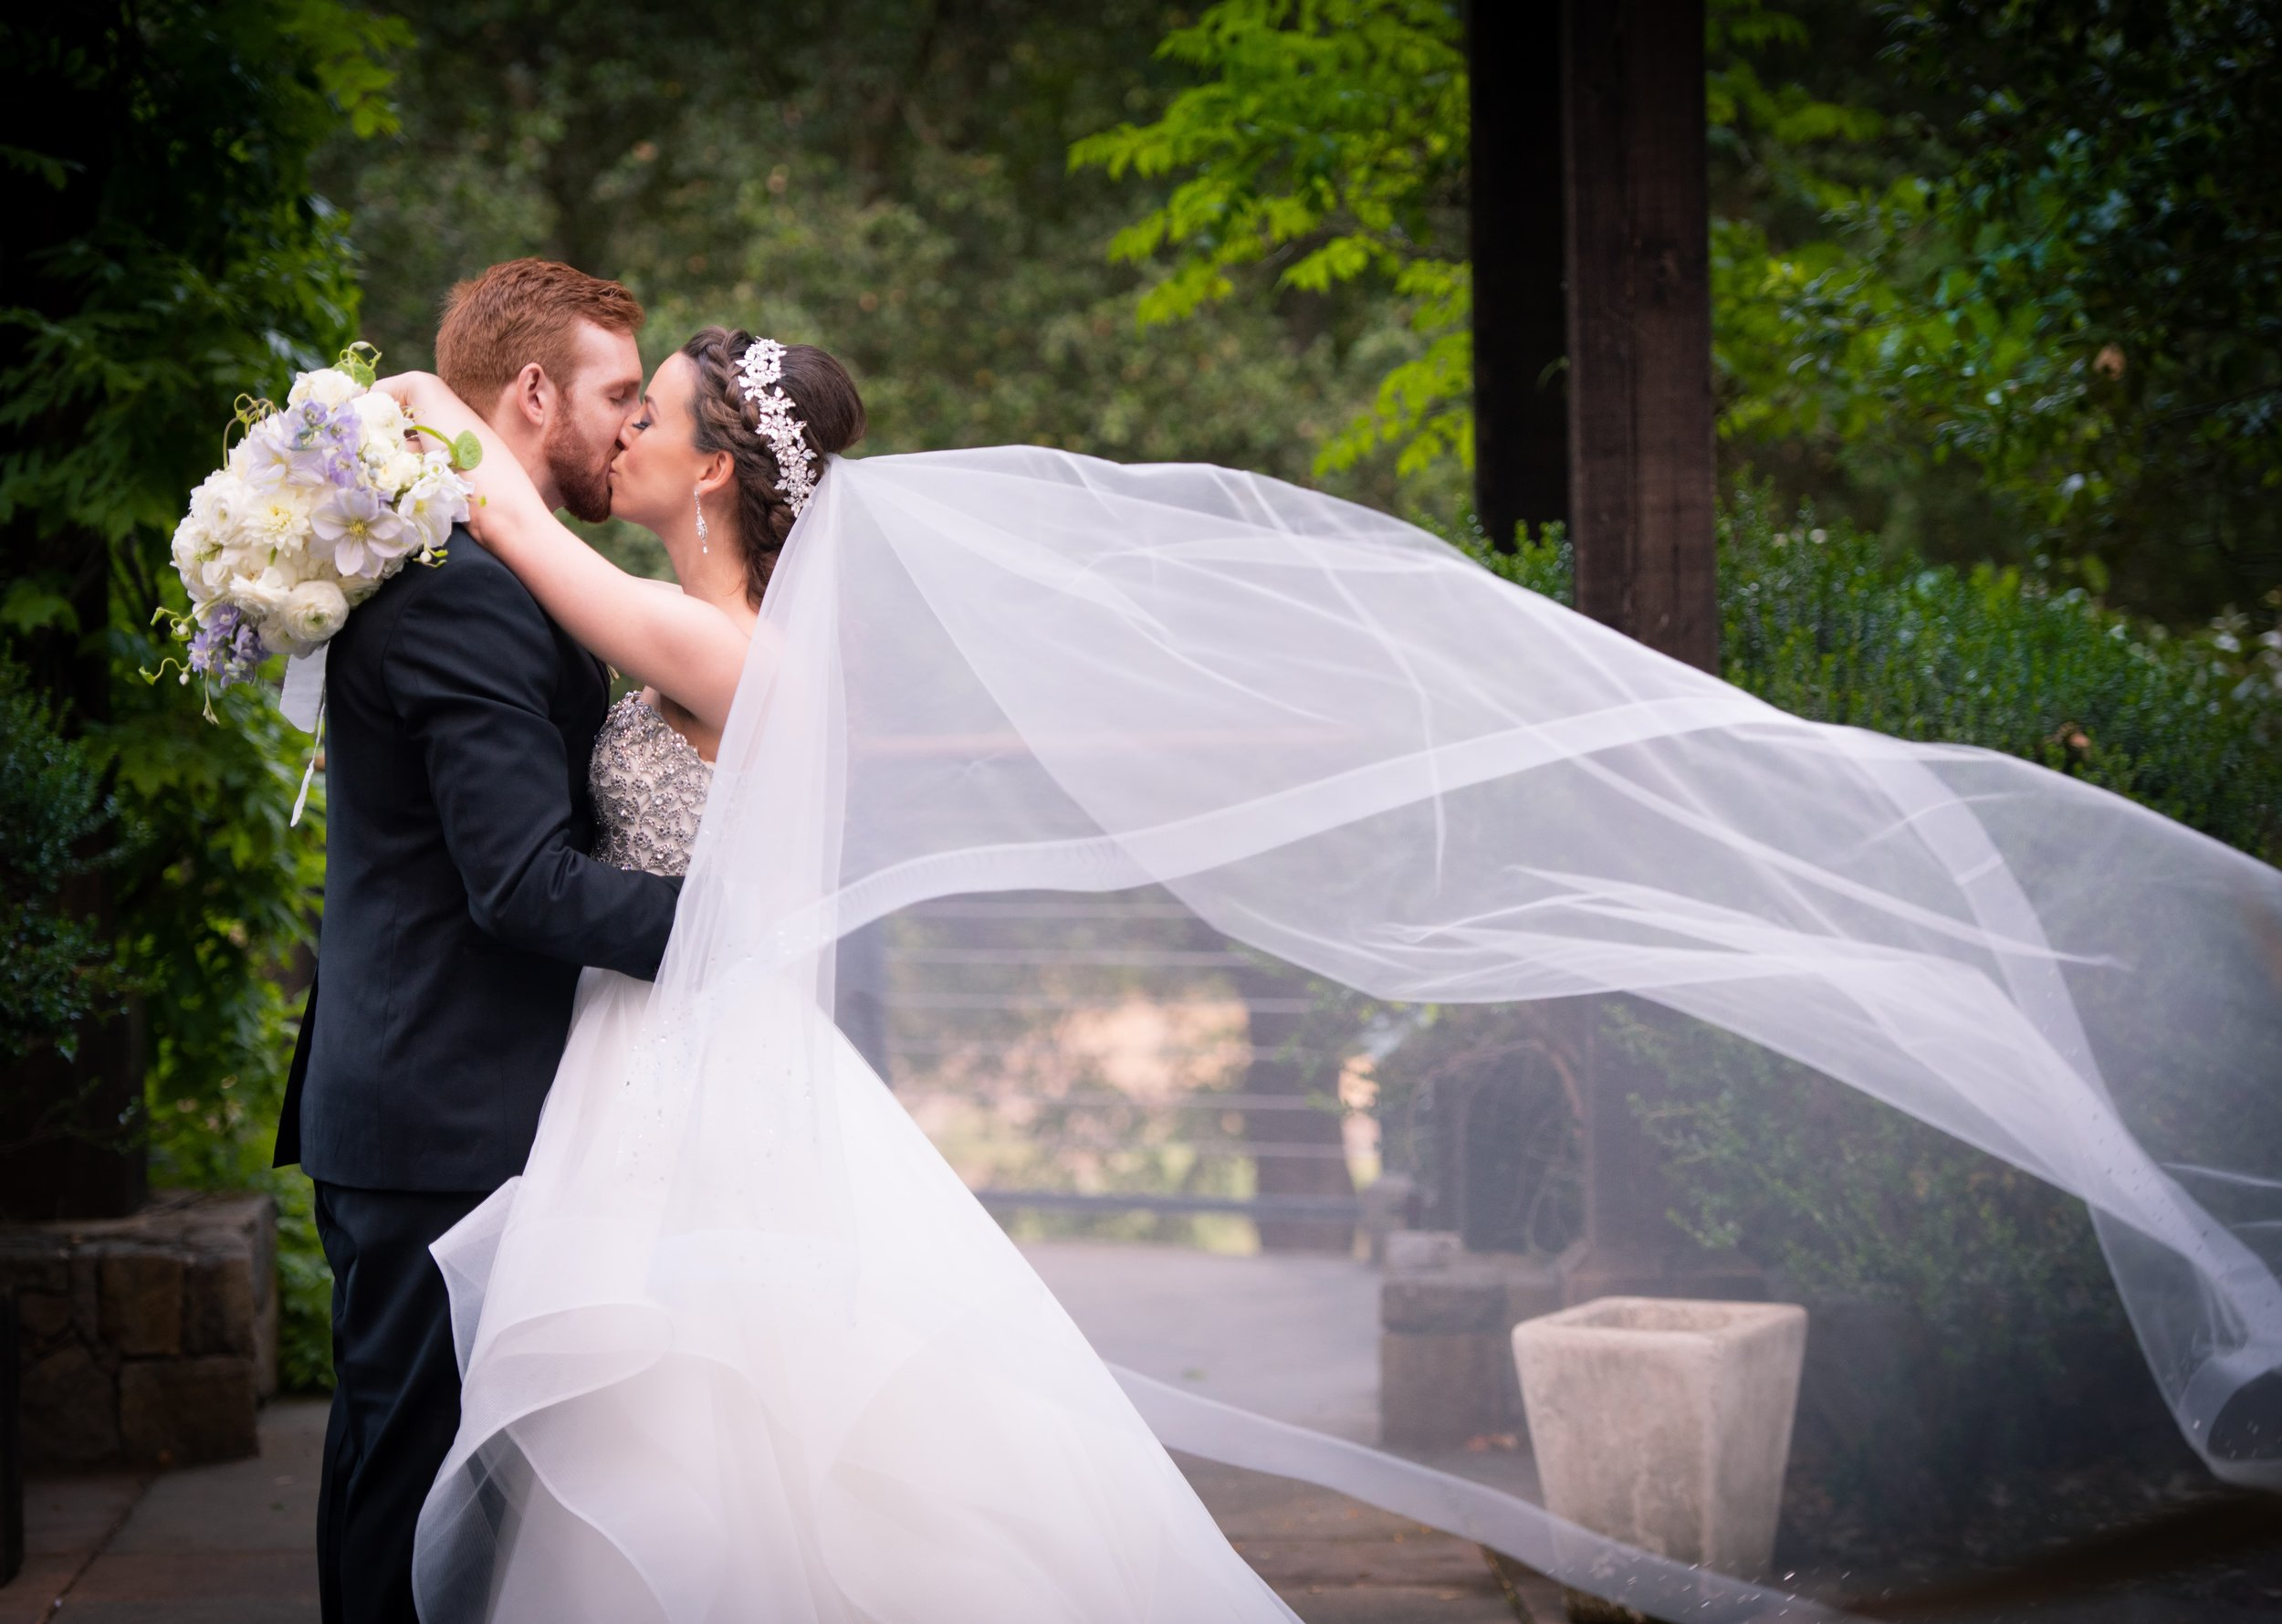 California-Wedding-Jamie-Levine-Photography-1.jpg